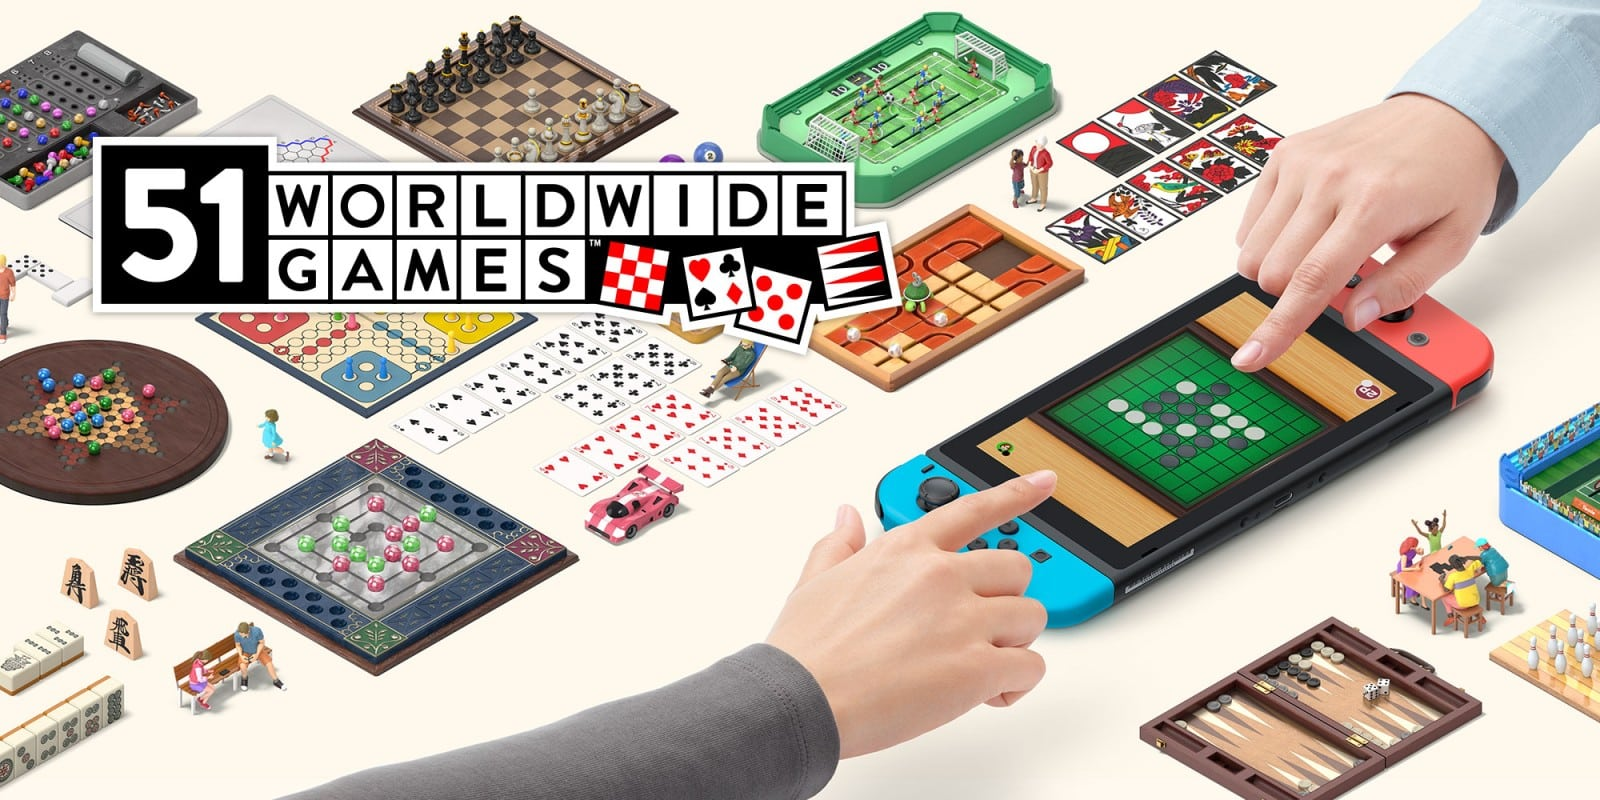 Test review avis 51 Wordwide Games Nintendo Switch